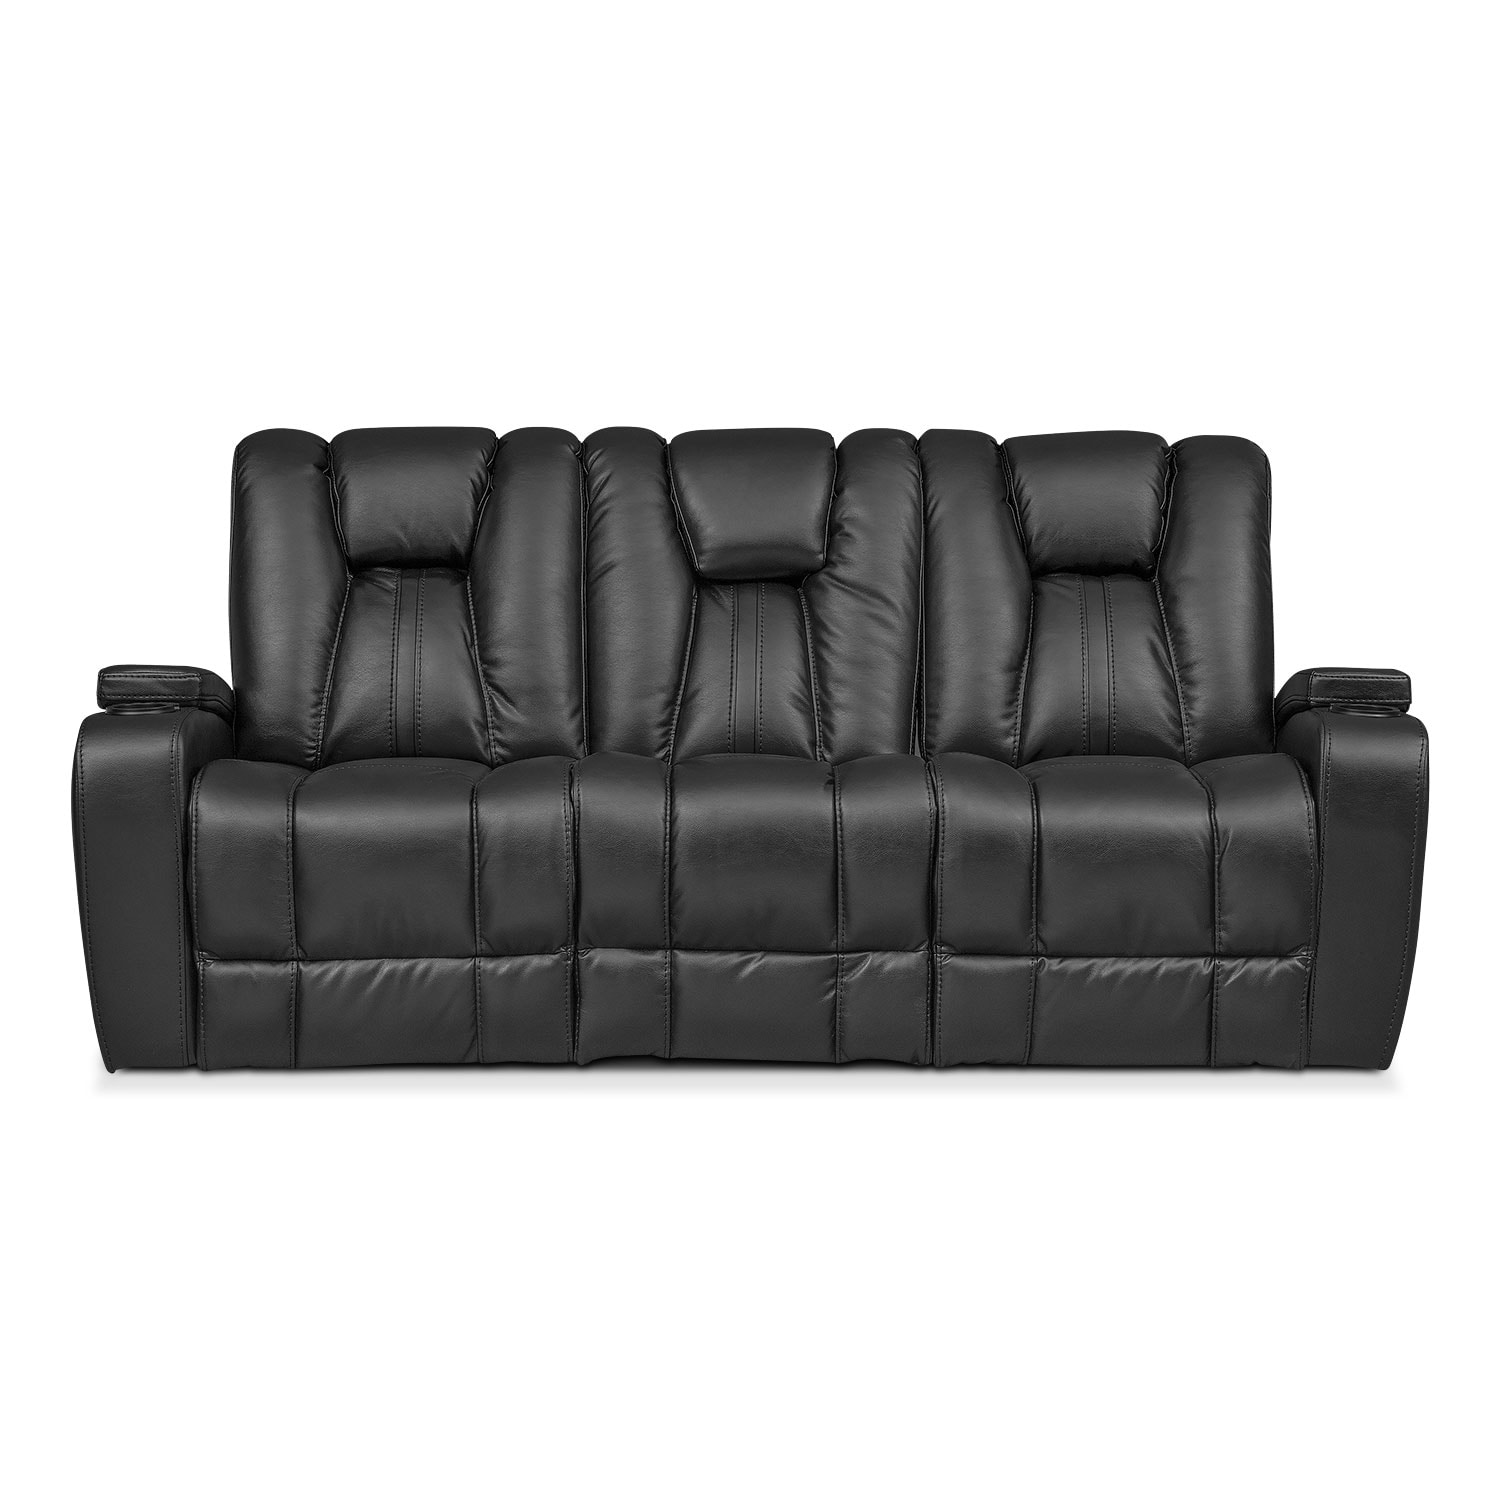 and furniture theater holder holders den with home reclining living arm power brown chair cup in storage room recliner contemporary genesis chaise